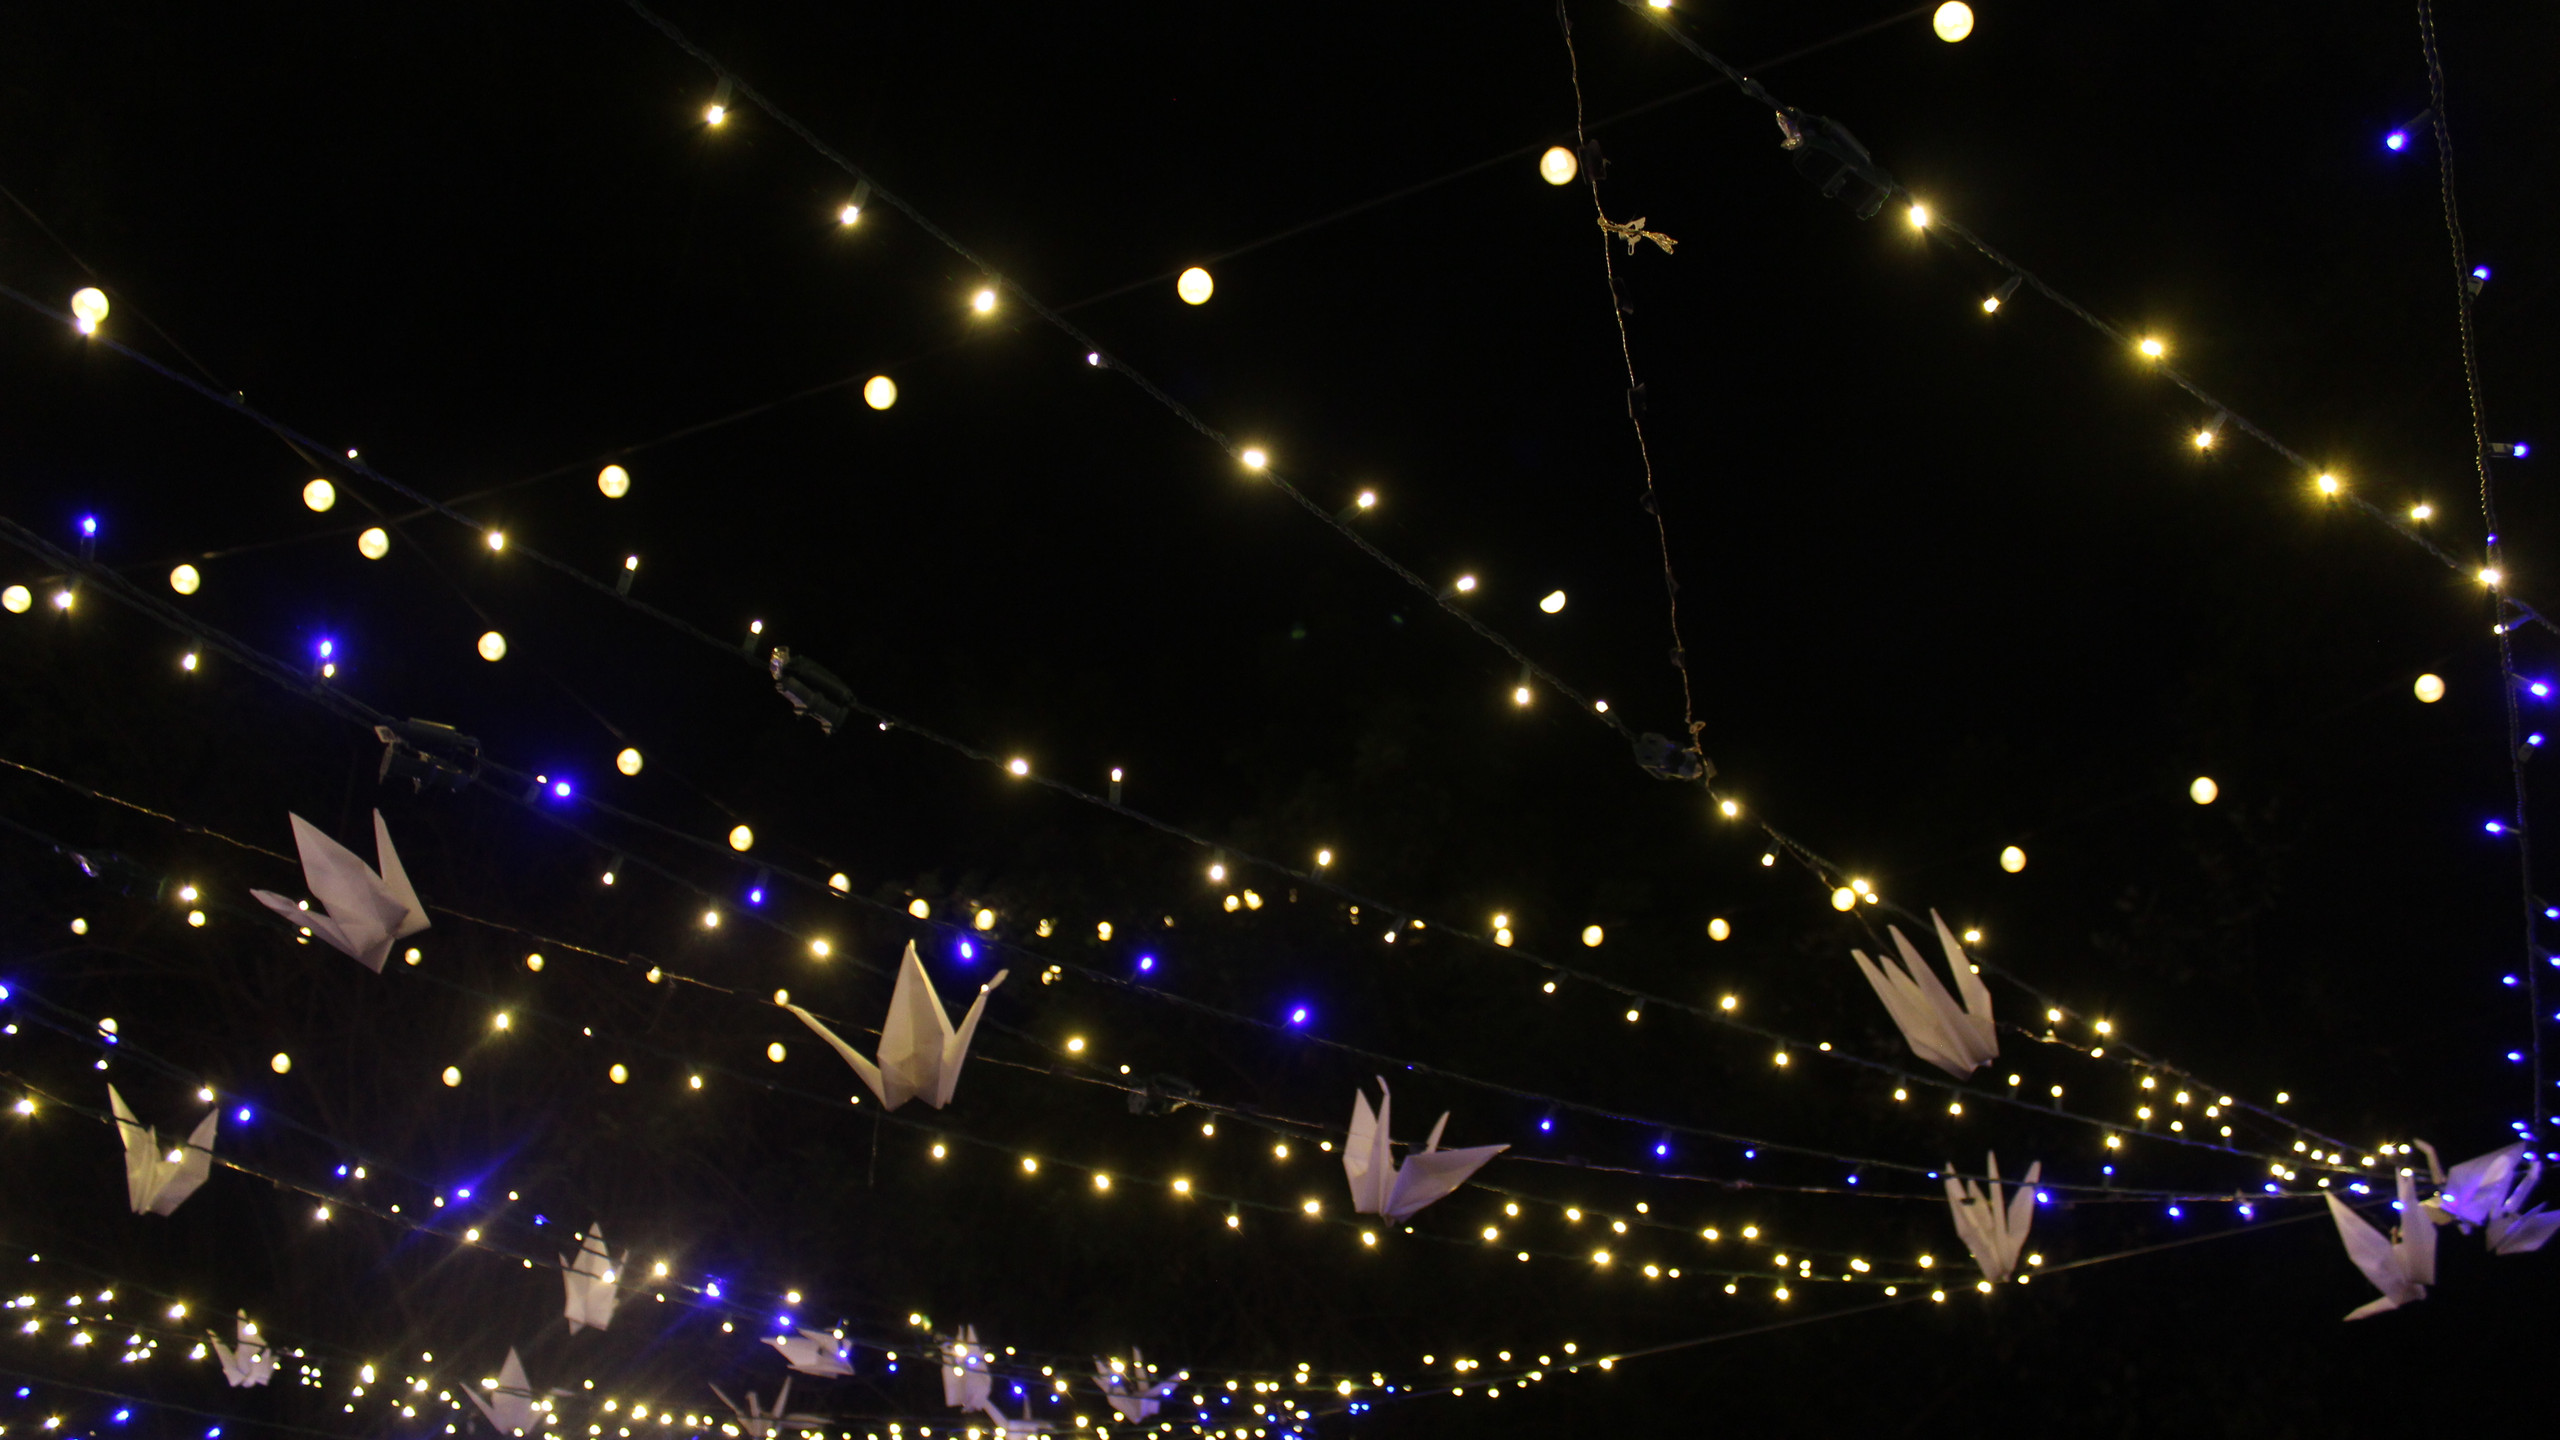 lights and Origami